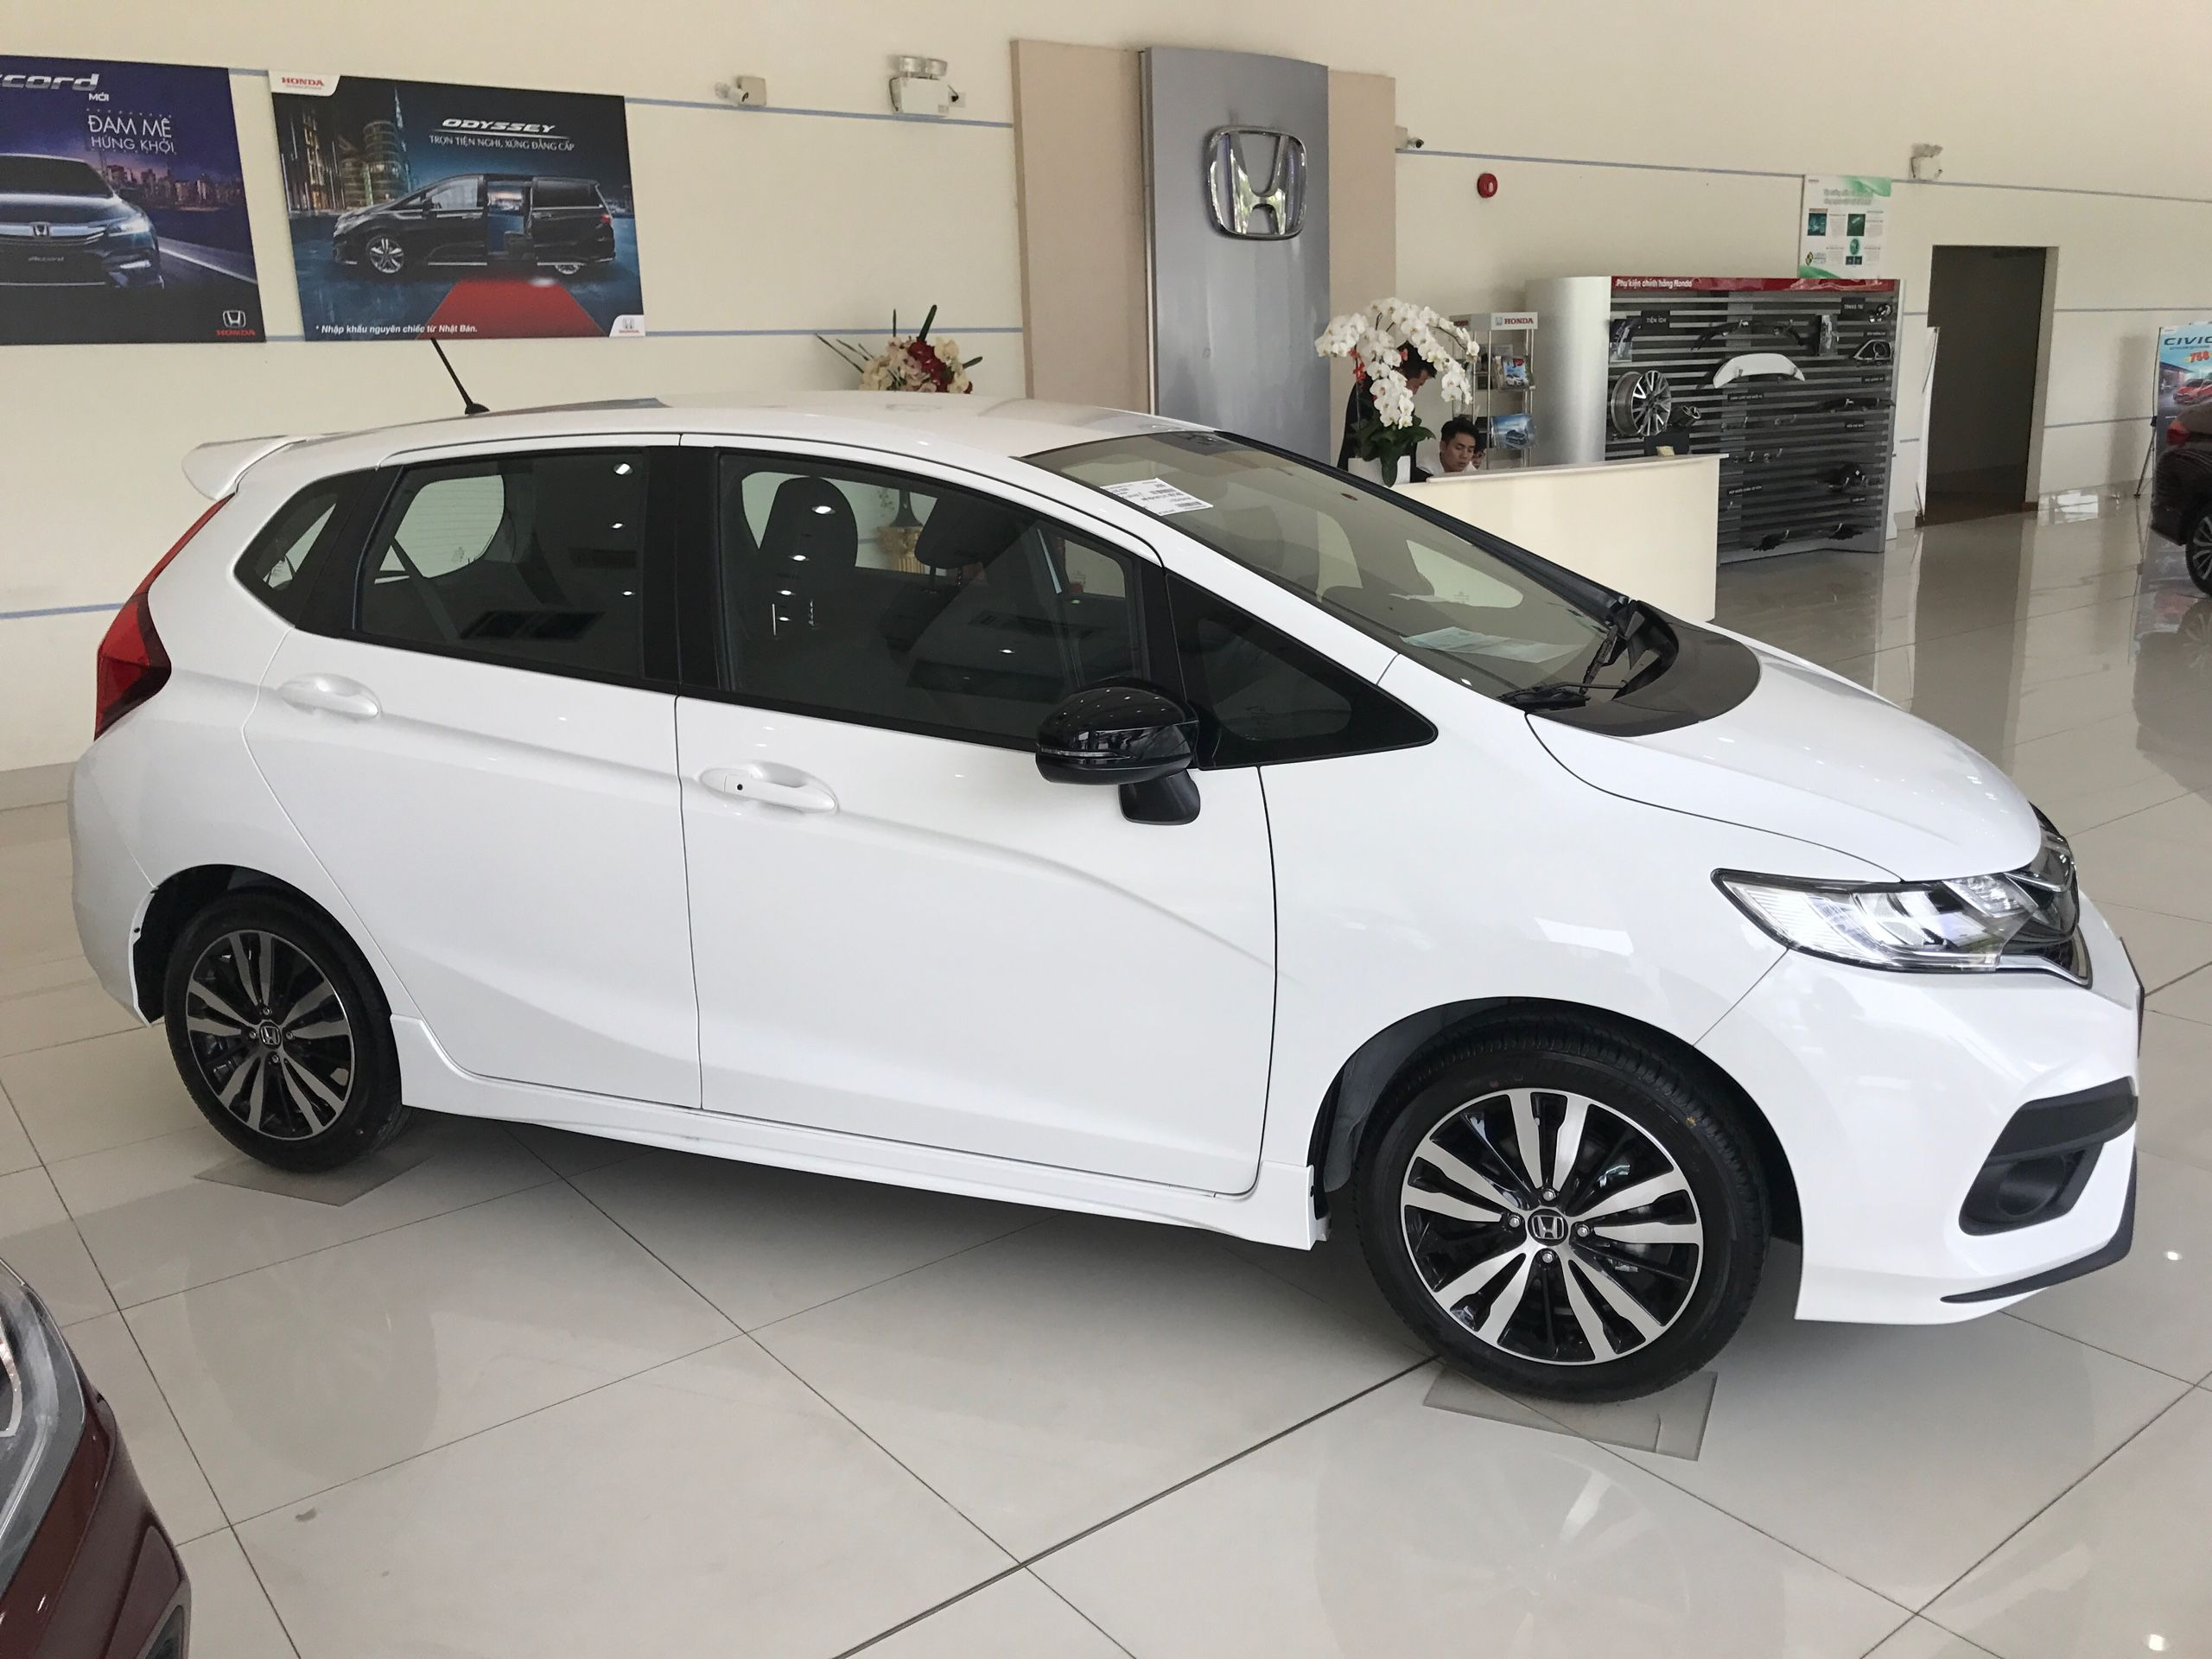 cheapest fit tech subcompact honda the review not best but for extreme